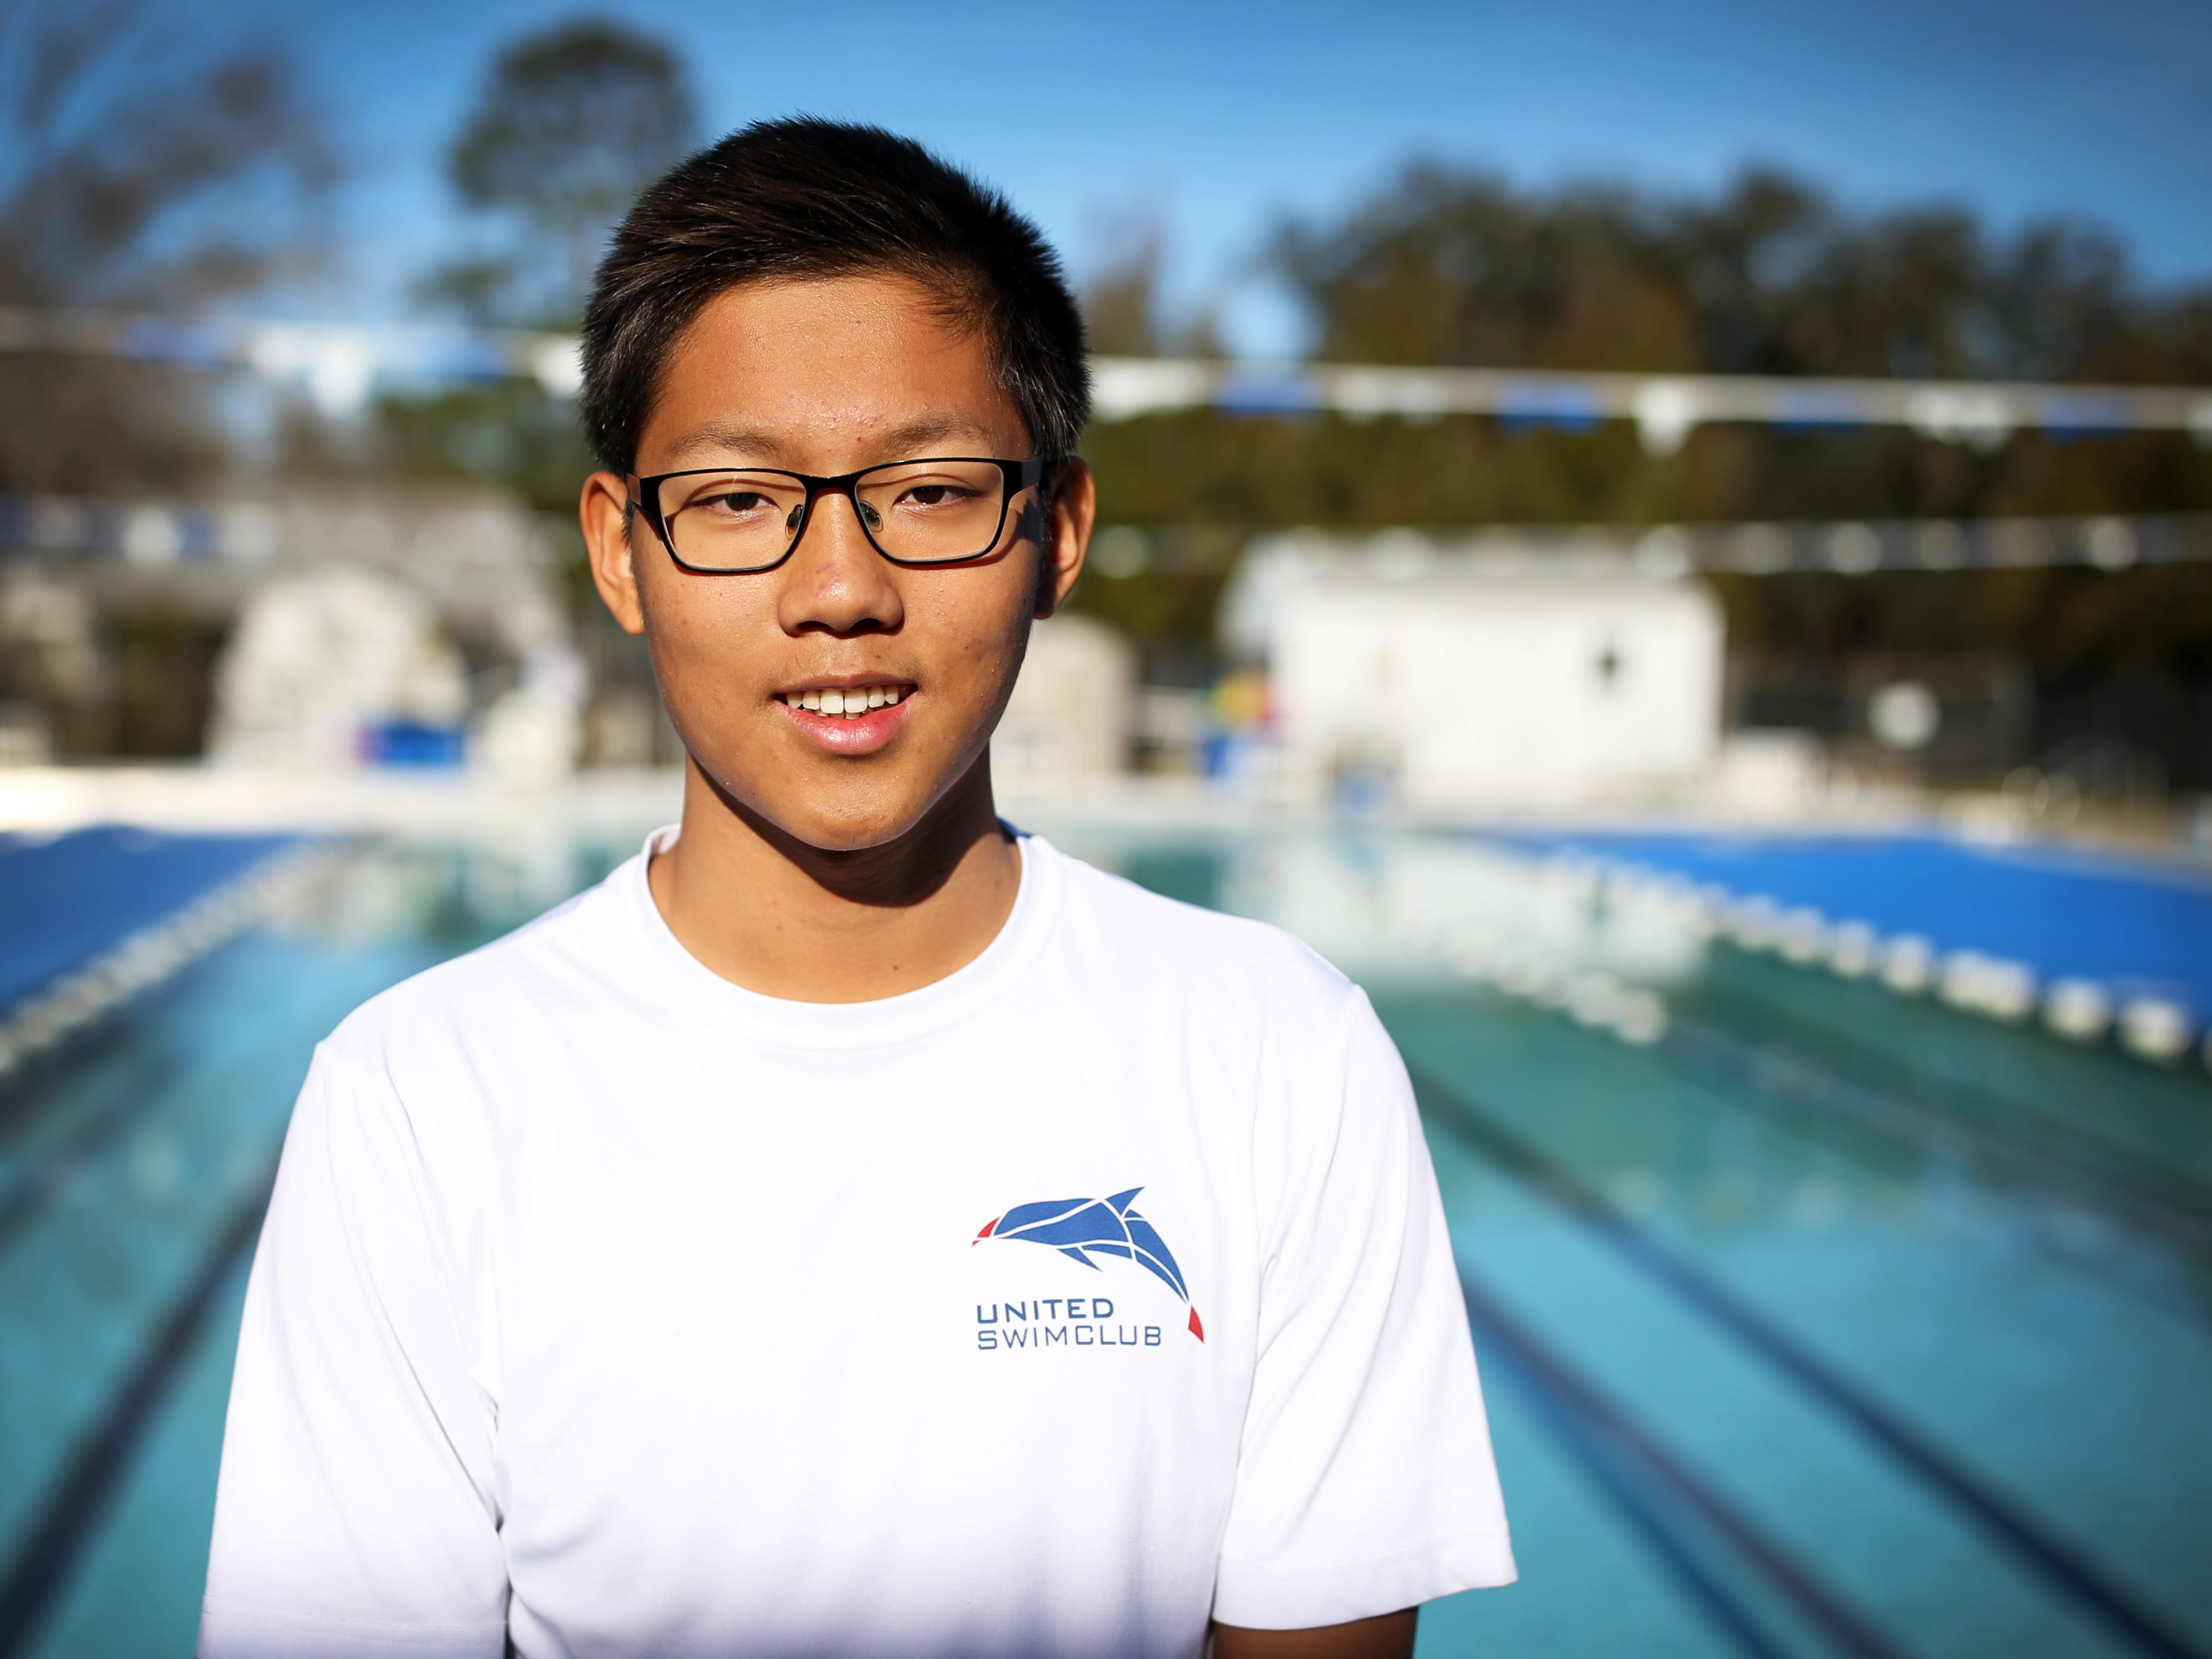 Chiles sophomore Hayden Kwan was named the 2018 All-Big Bend Swimmer of the Year in boys swimming and diving after capturing a Class 3A state title in the 100-meter backstroke while swimming an All-American automatic time, and taking third in the 200 intermediate medley.